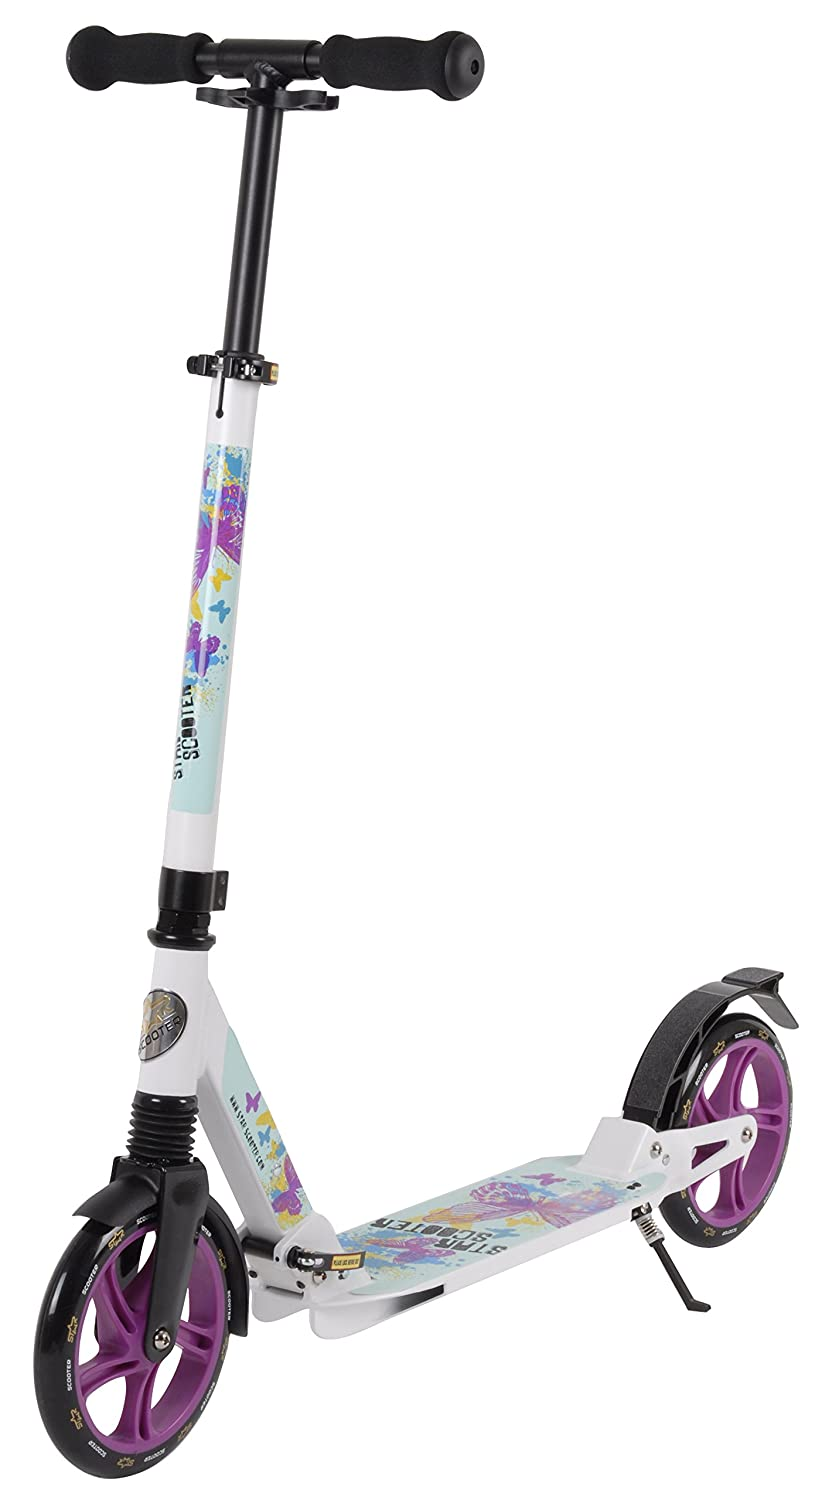 Star-scooter Premium City Scooter 205mm Wheel Size Full Suspension Edition White & Turquoise